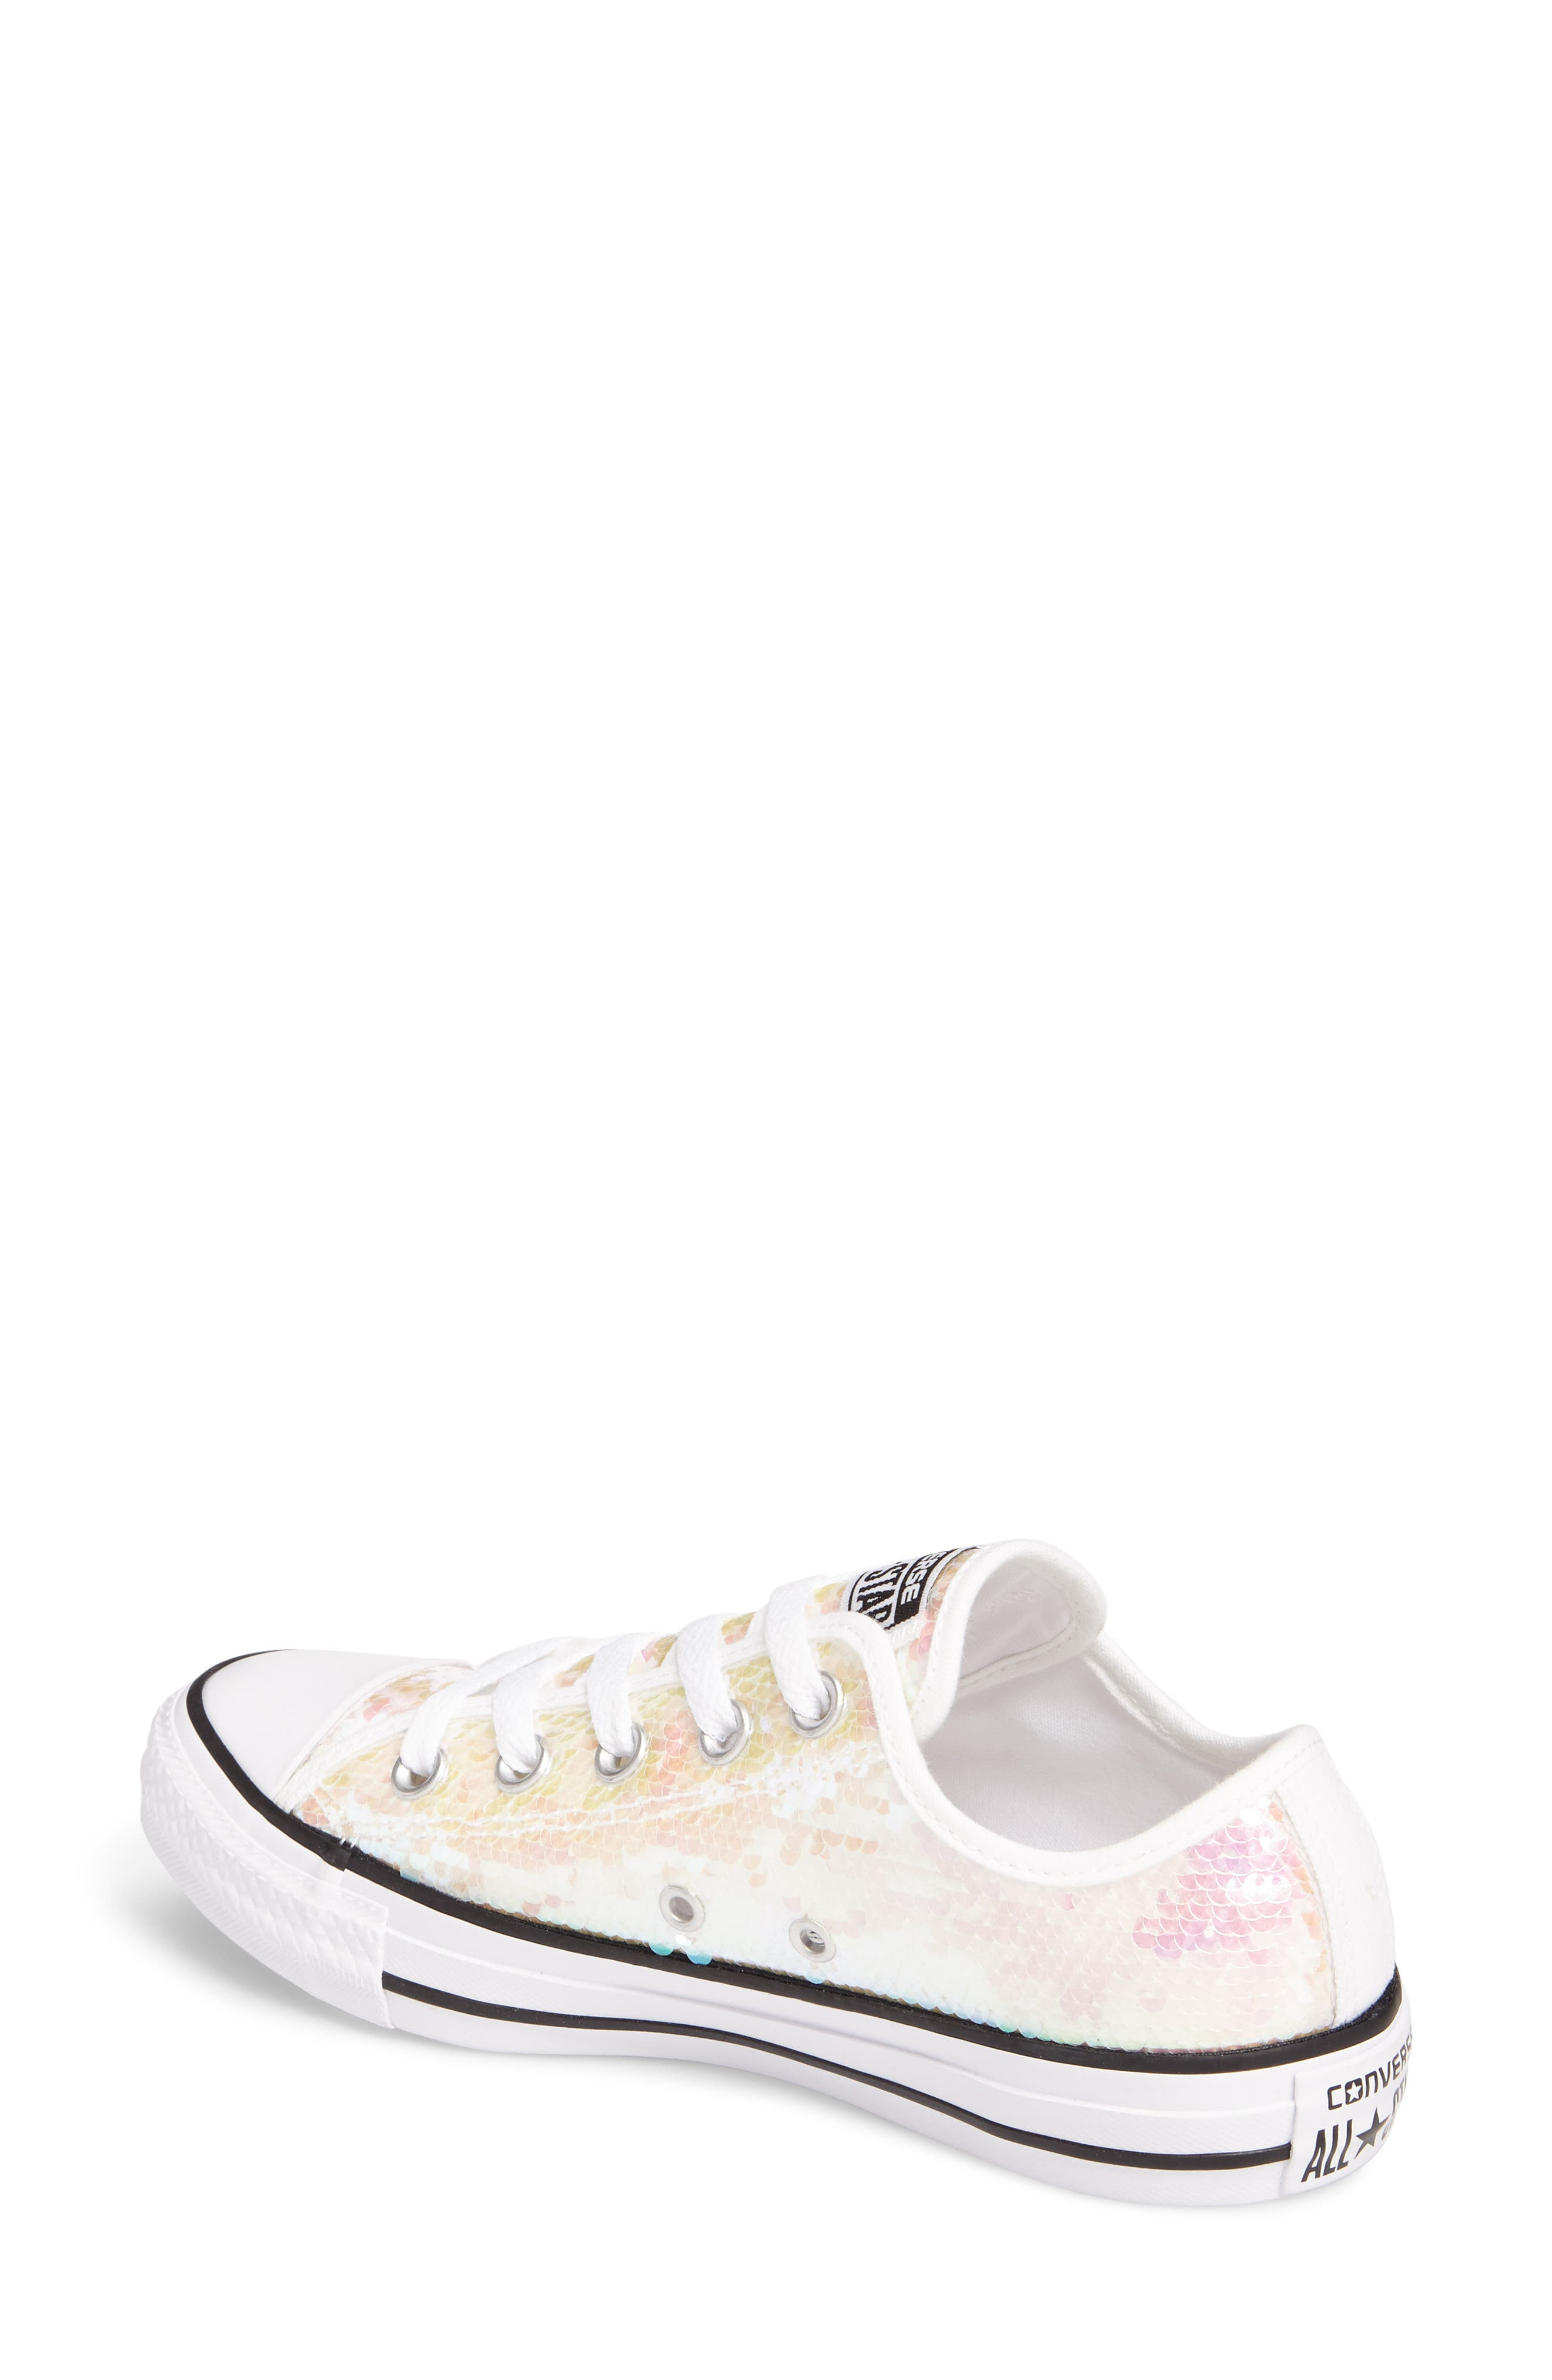 Chuck Taylor<sup>®</sup> All Star<sup>®</sup> Sequin Low Top Sneaker,                             Alternate thumbnail 4, color,